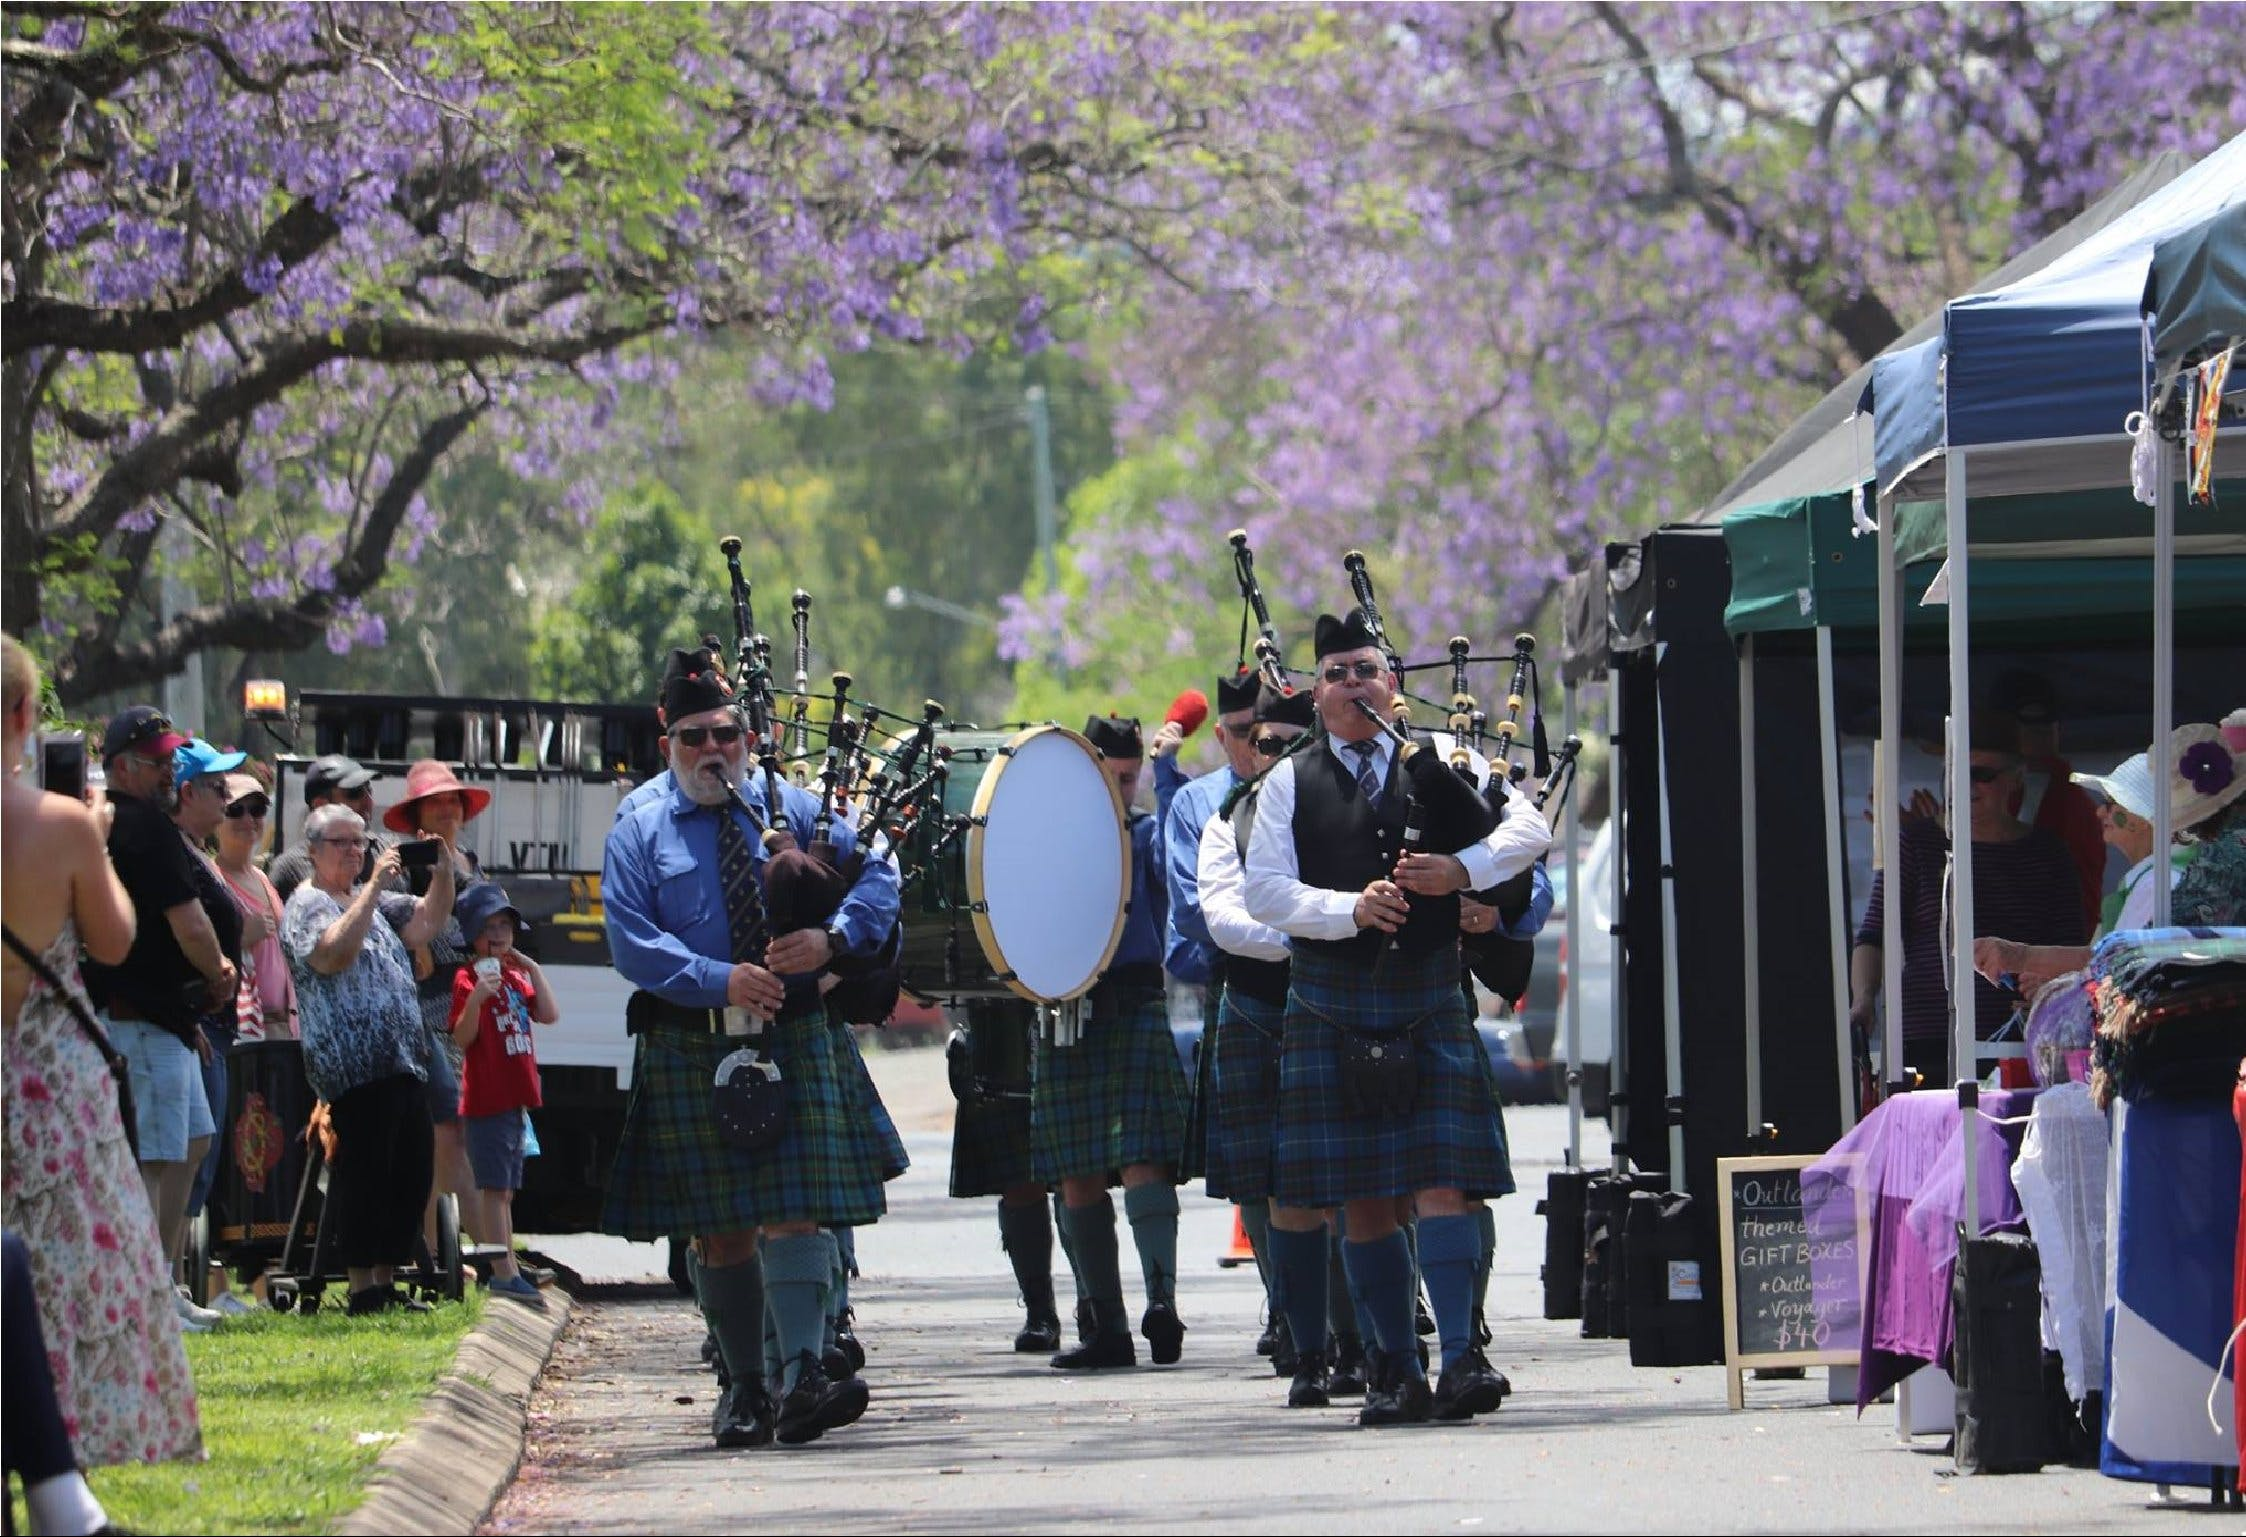 Celtic Festival of Queensland - Wagga Wagga Accommodation